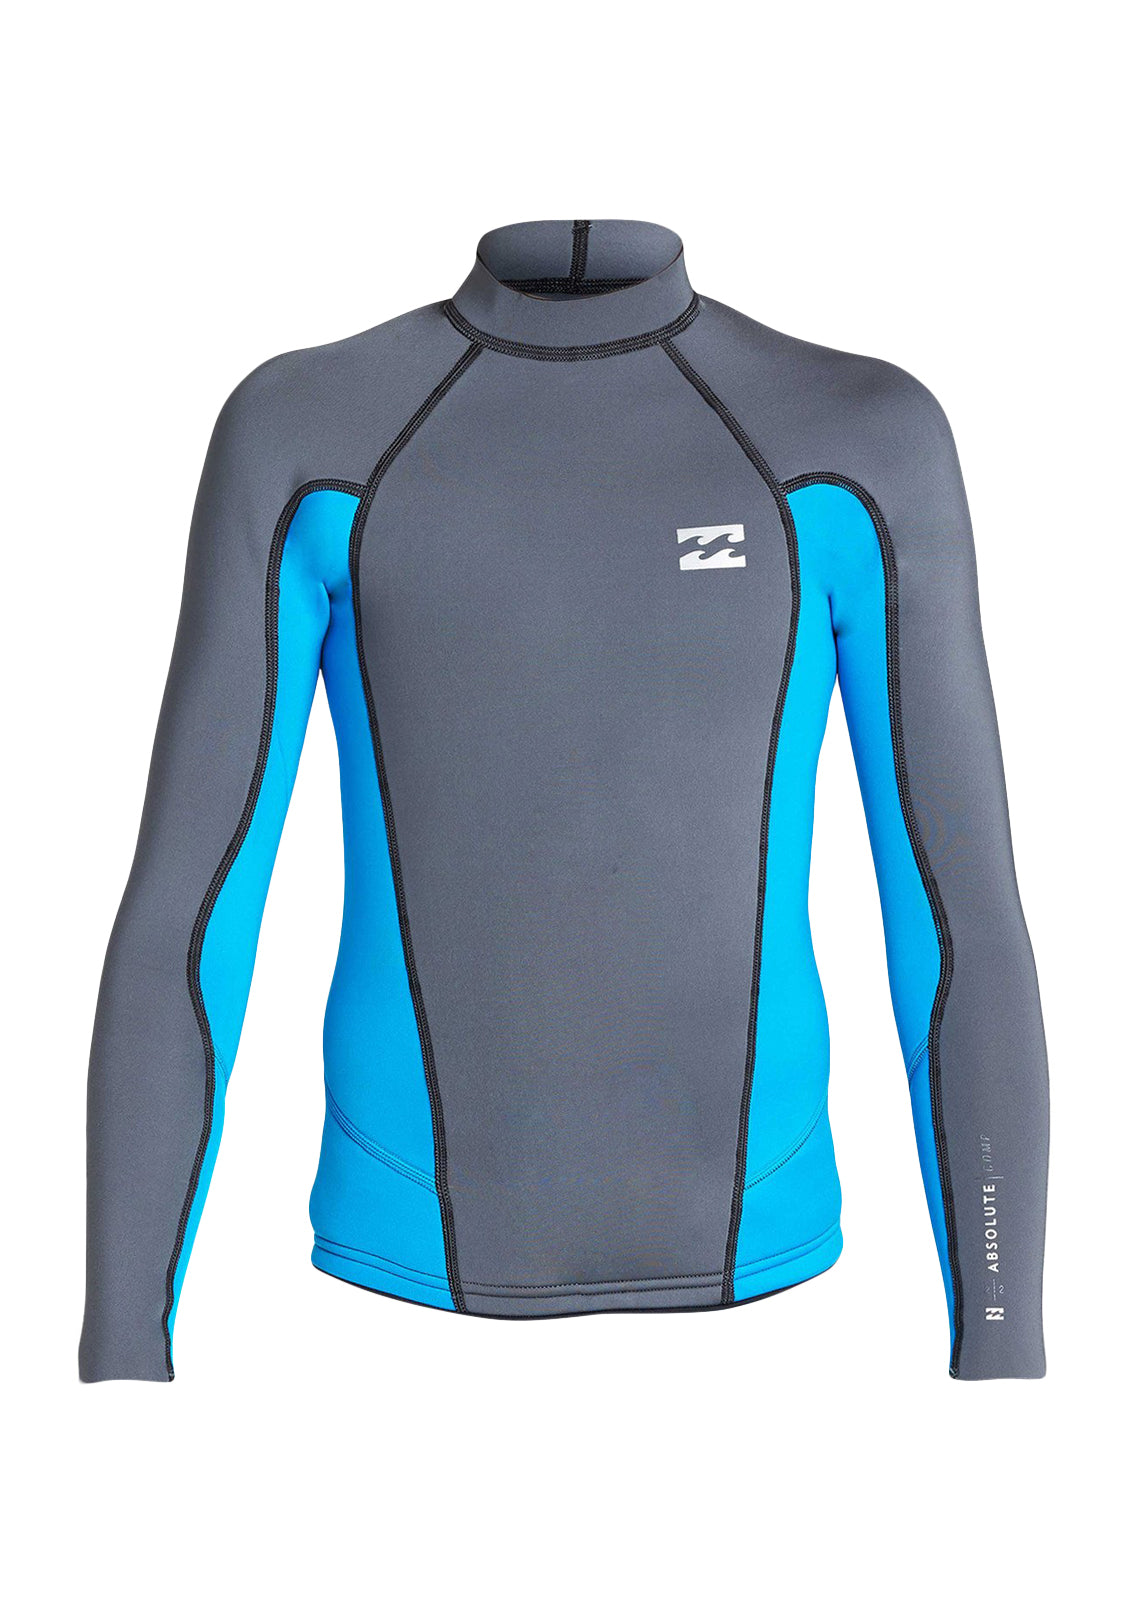 Boy's 202 Absolute Long Sleeve Neoprene